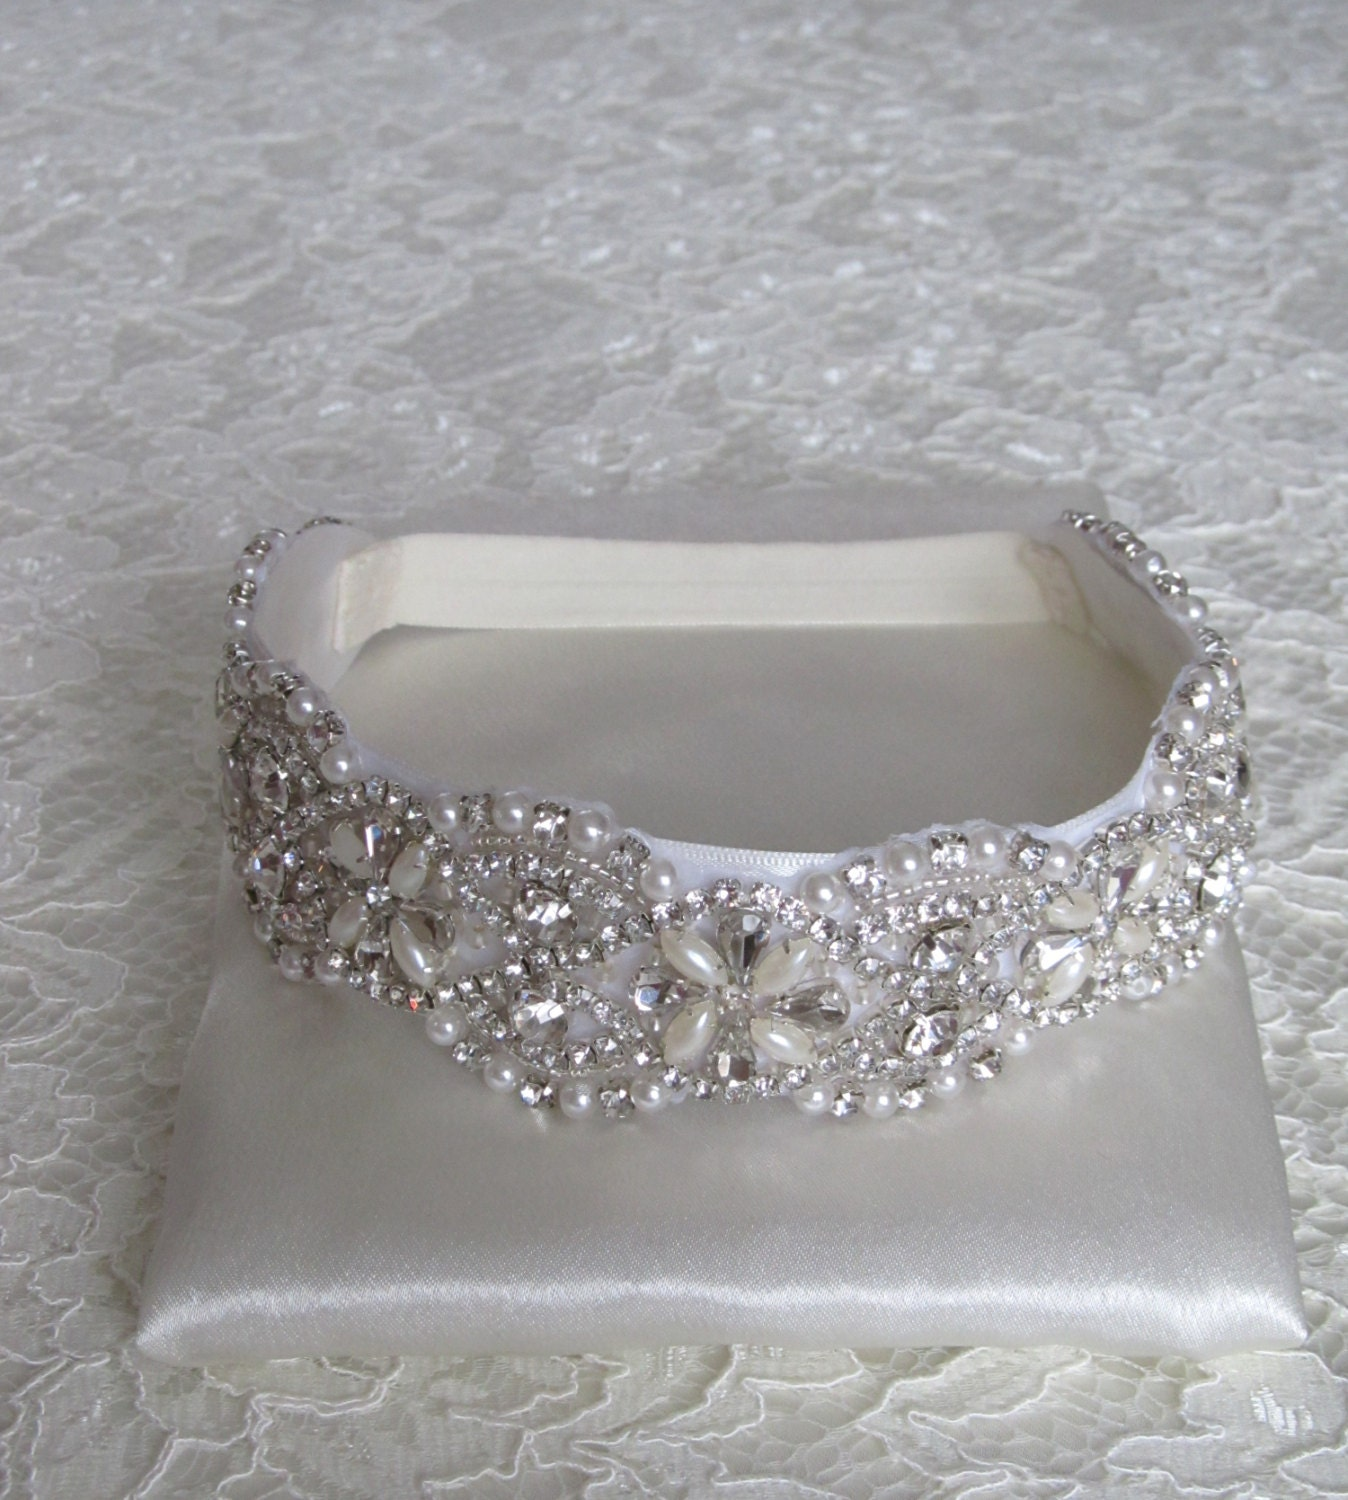 Pearl Crystal Rhinestone Bridal Garter,Wedding Garter,Bridal Accessories,Style #G3